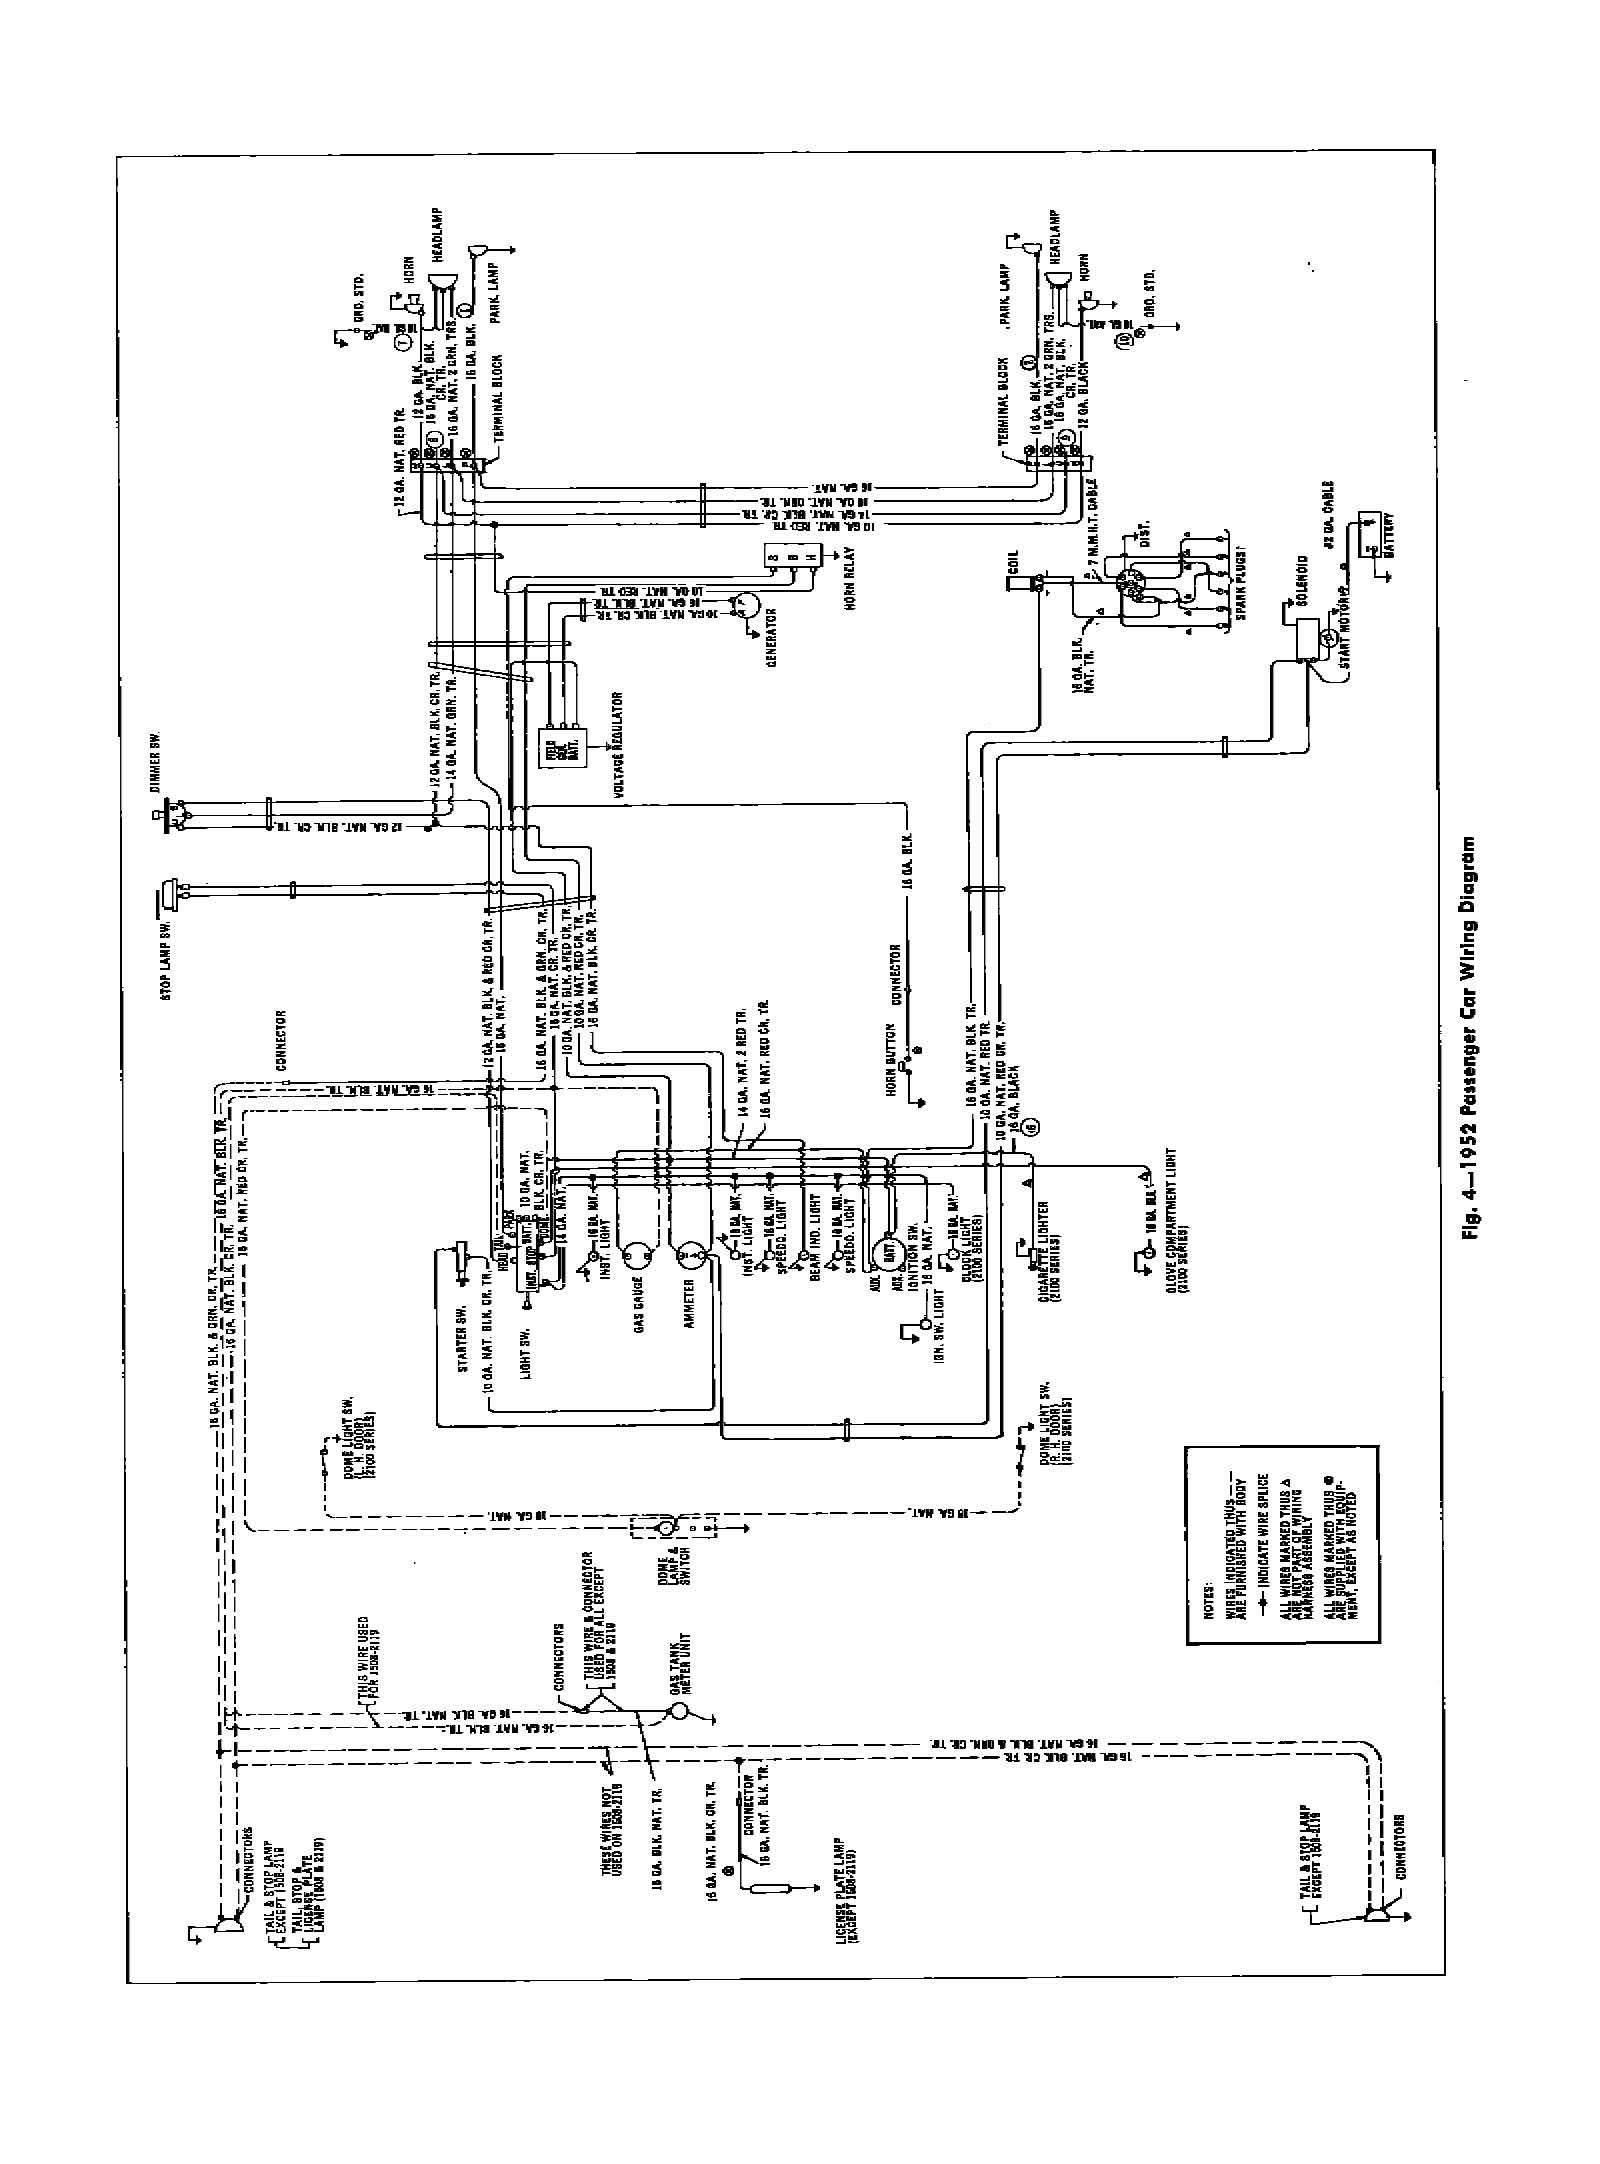 hight resolution of wiring diagram for a 1952 chevy truck wiring get free basic brake light wiring diagram basic brake light wiring diagram